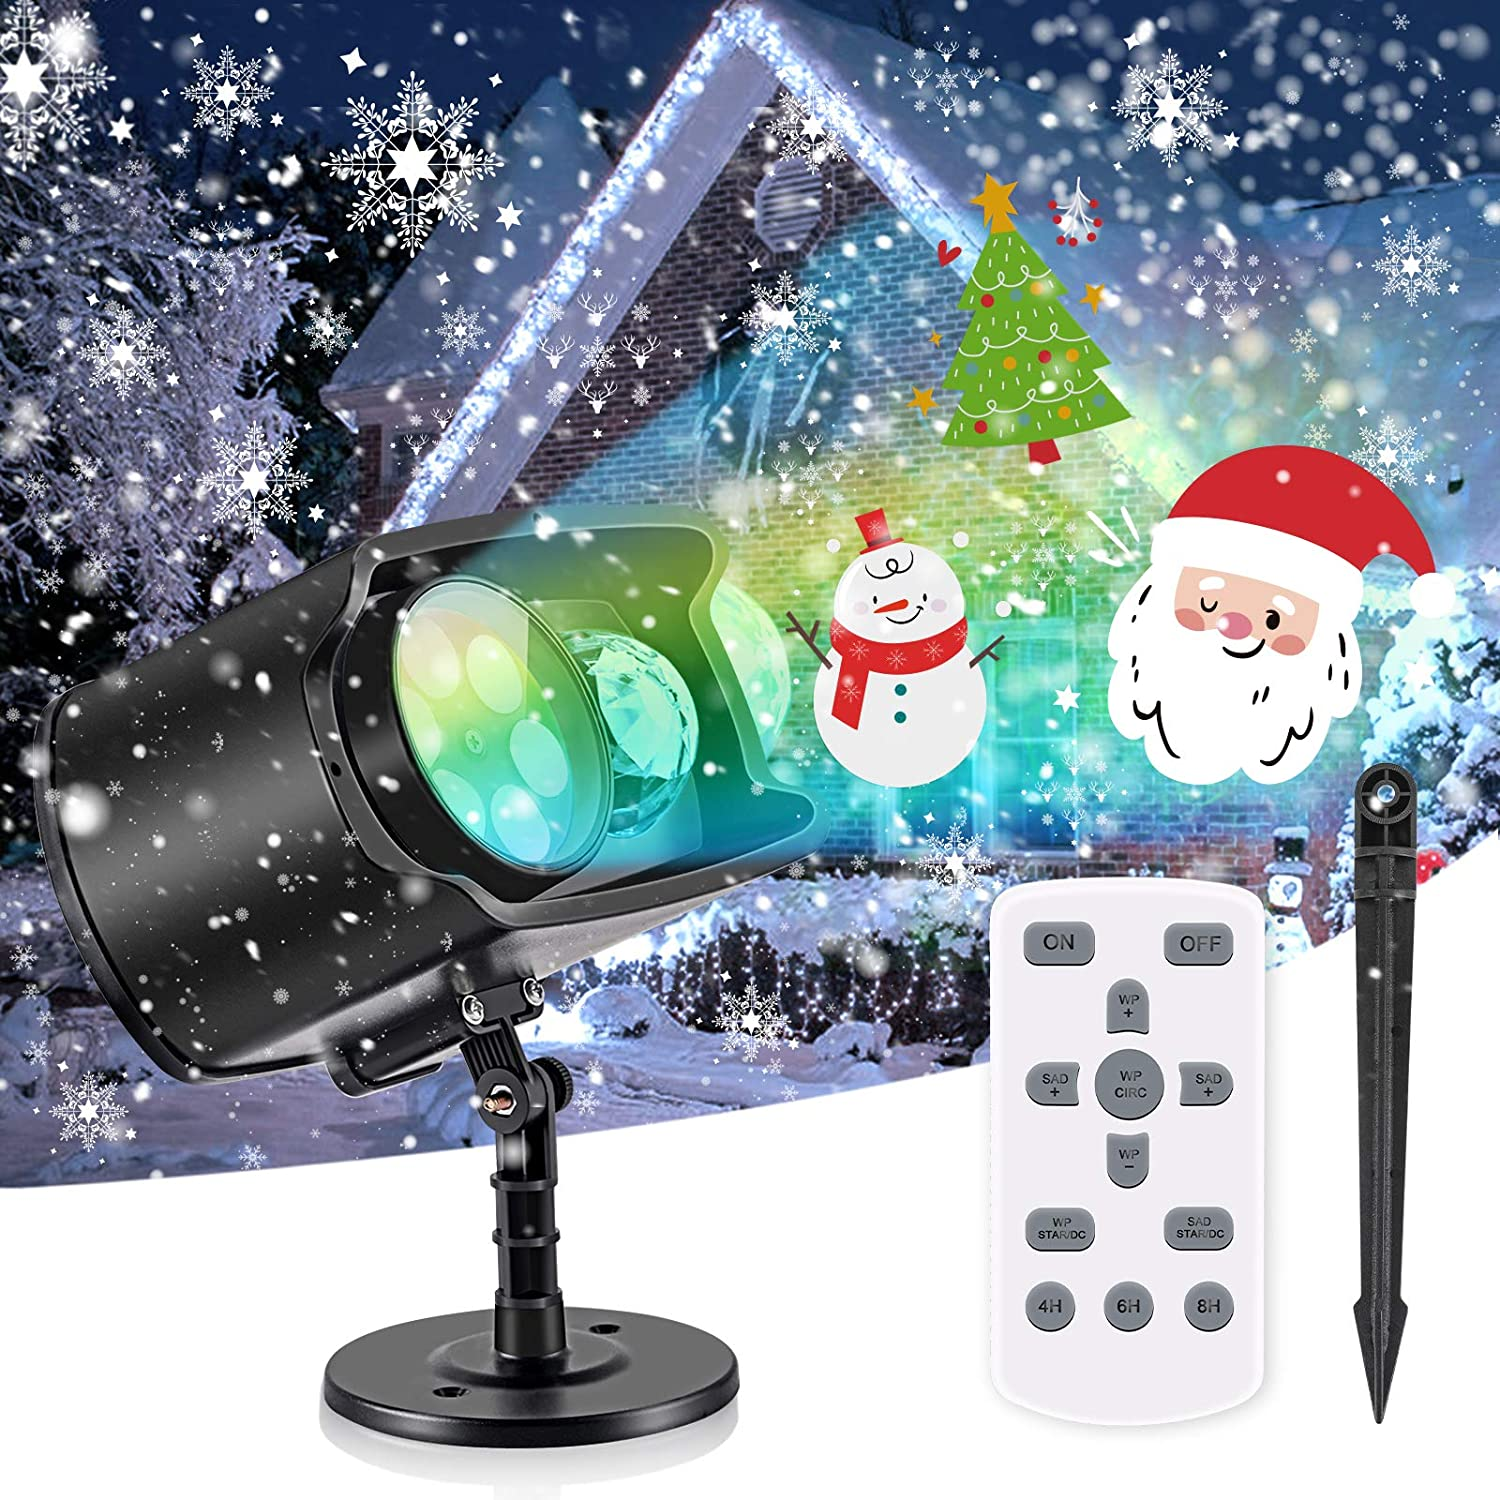 Christmas Projector Lights,No Slides Needed,AGPTEK 2-in-1 Water Wave & Moving Patterns Projector Lights for Outdoor Indoor Holiday Party